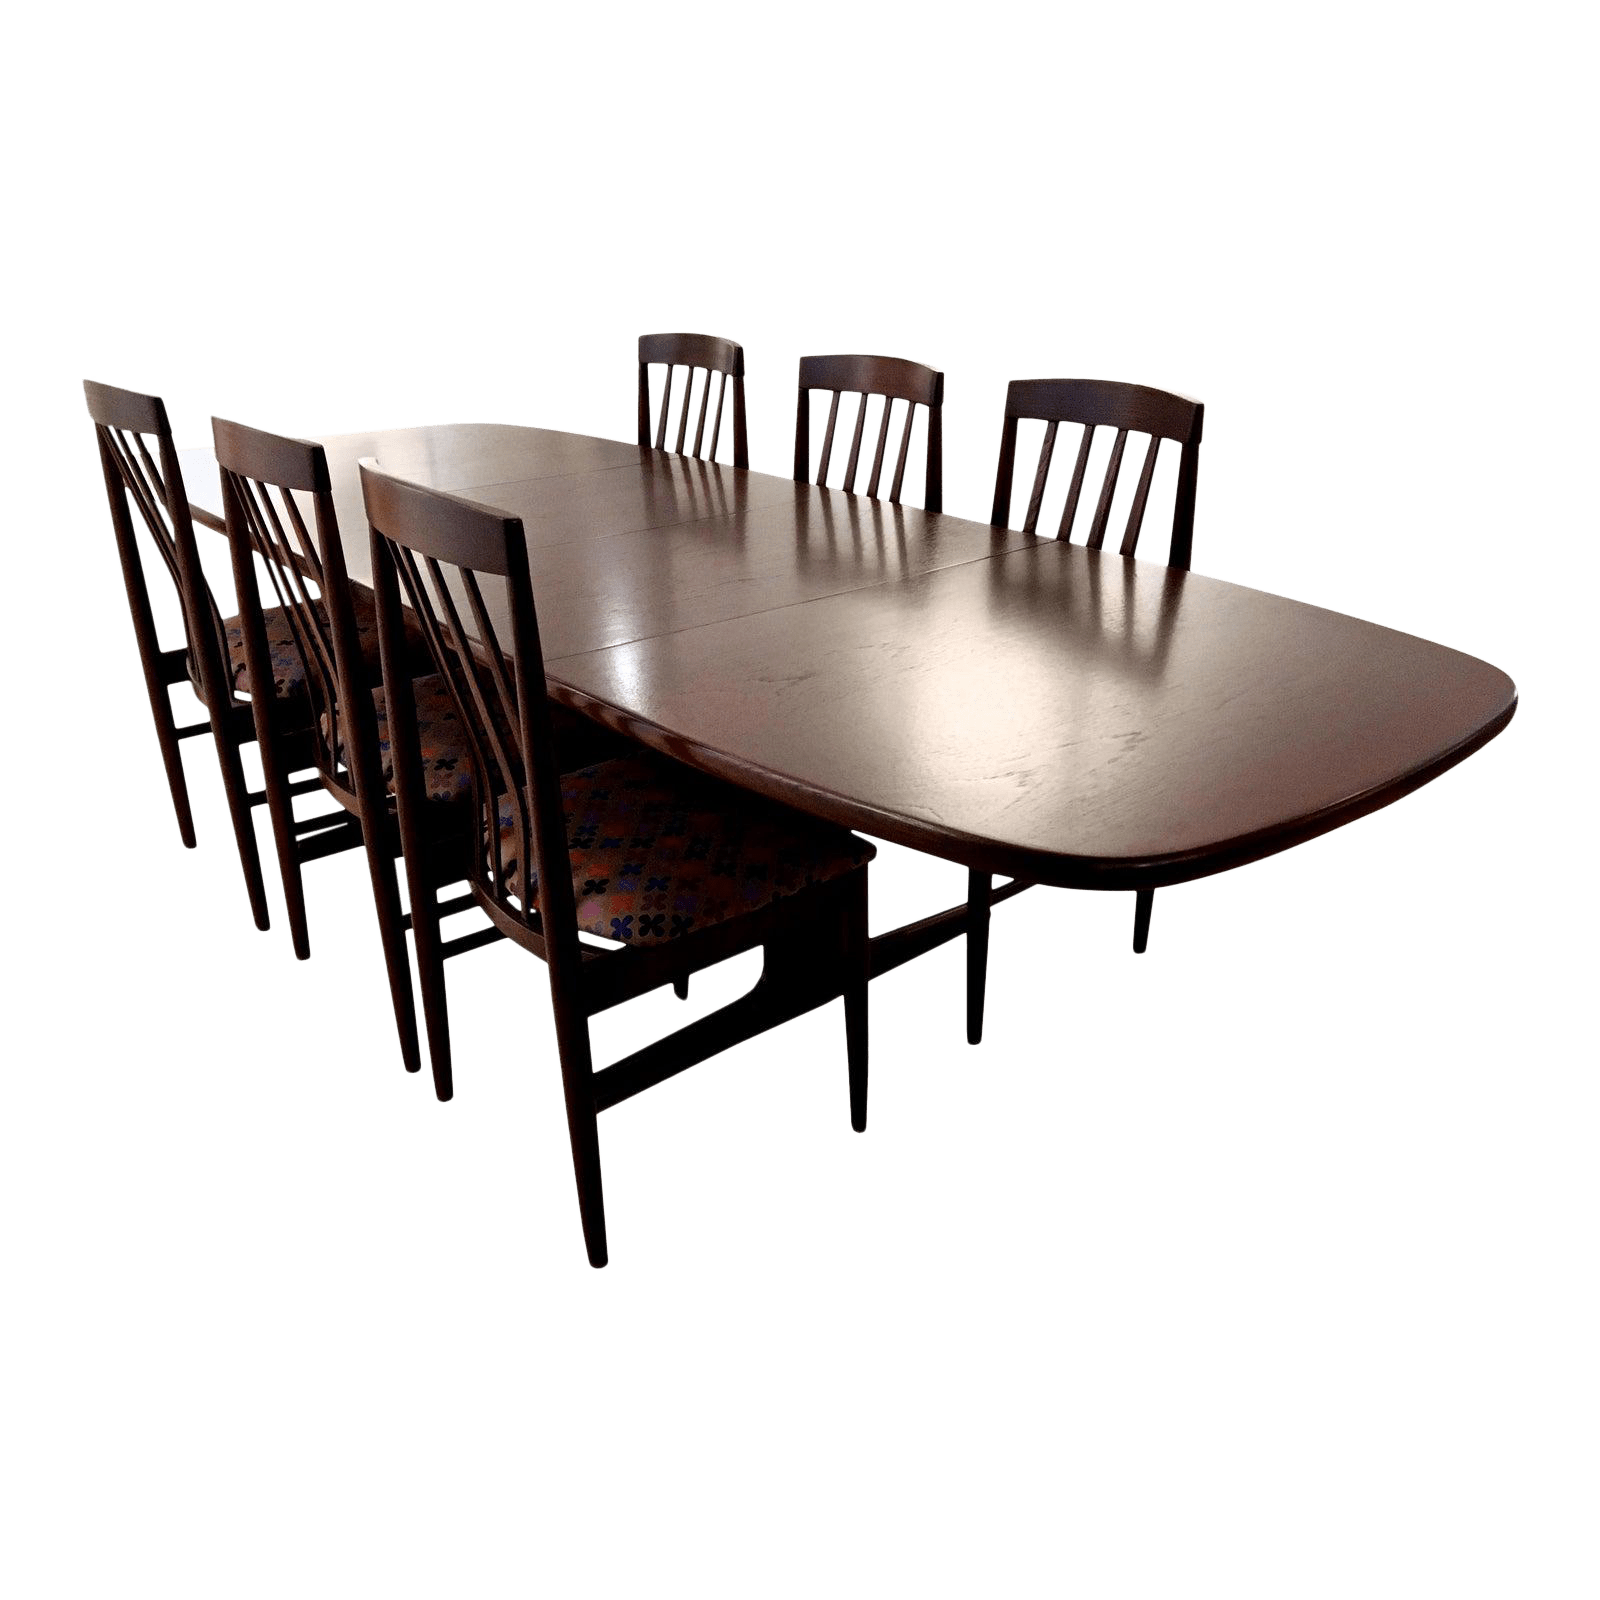 Teak Dining Room Chairs 1960s Scandinavian Design Rose Mahogany Finished Teak Dining Table Chairs Set Of 6